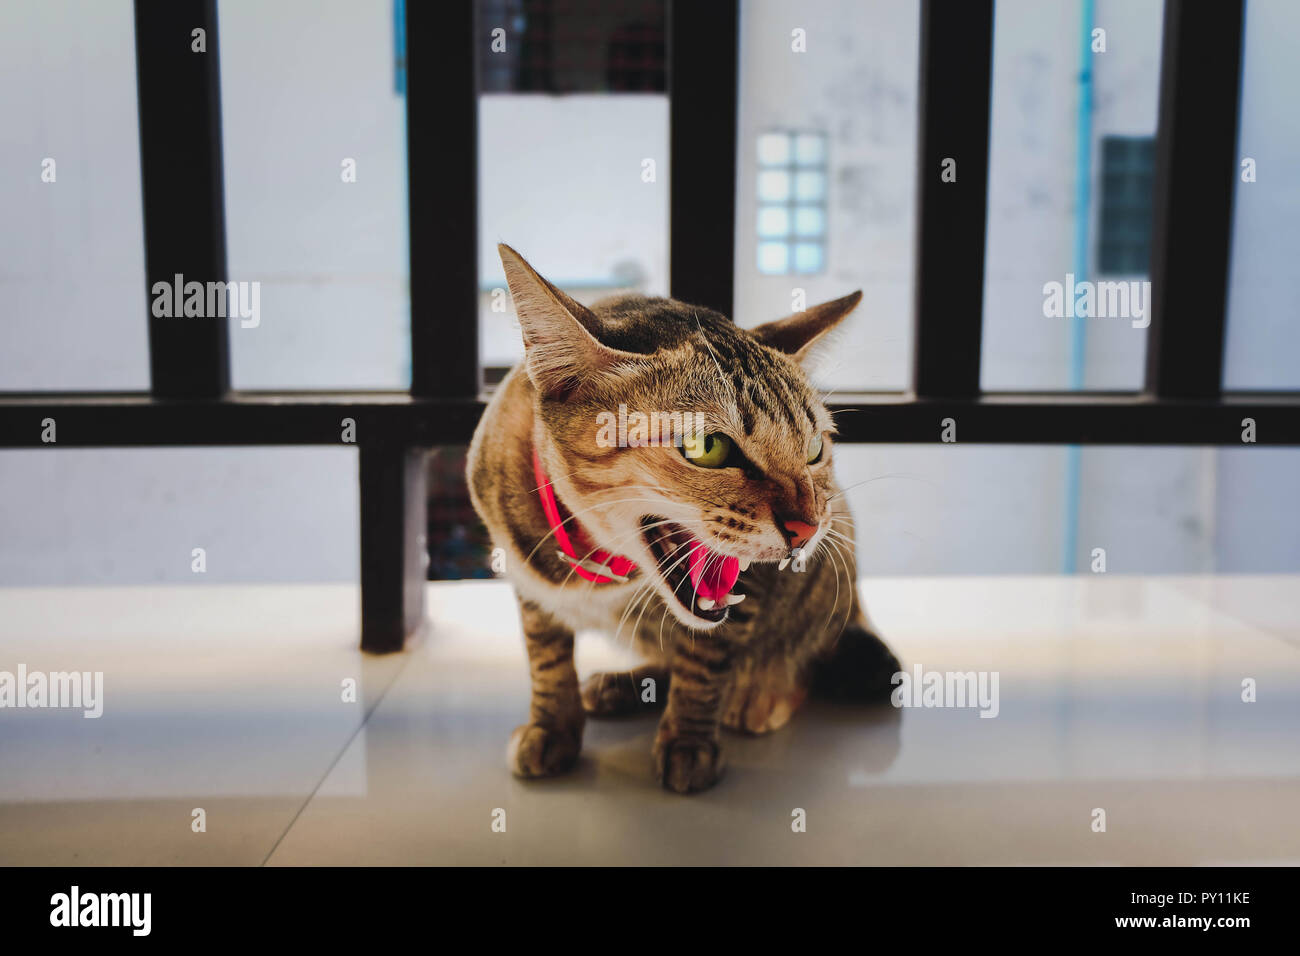 The feral cat is very angry - Stock Image